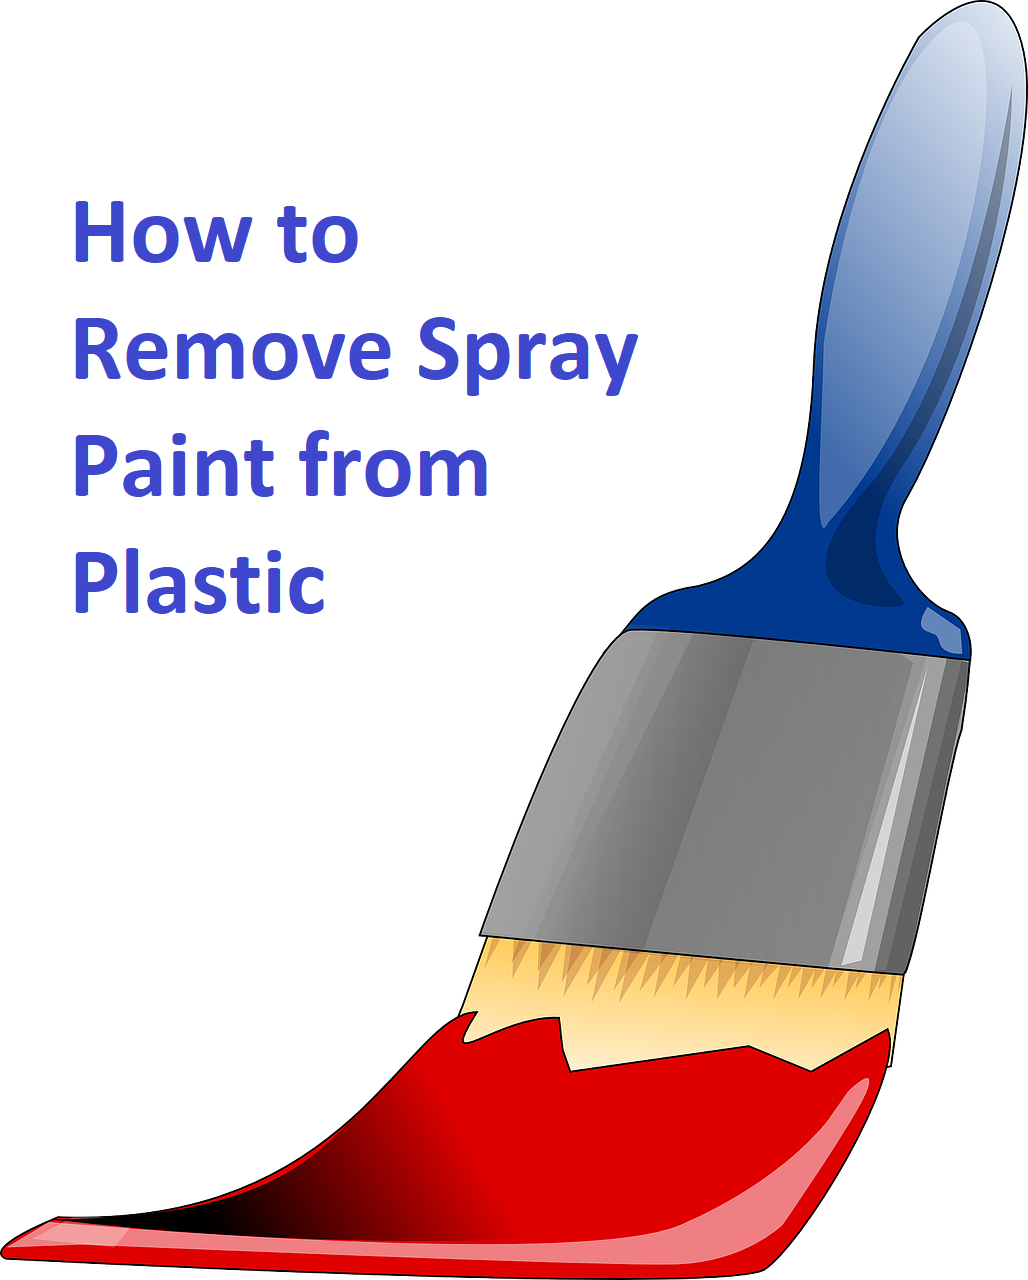 How To Remove Spray Paint From Plastic >> How To Remove Spray Paint From Plastic Homeaholic Net